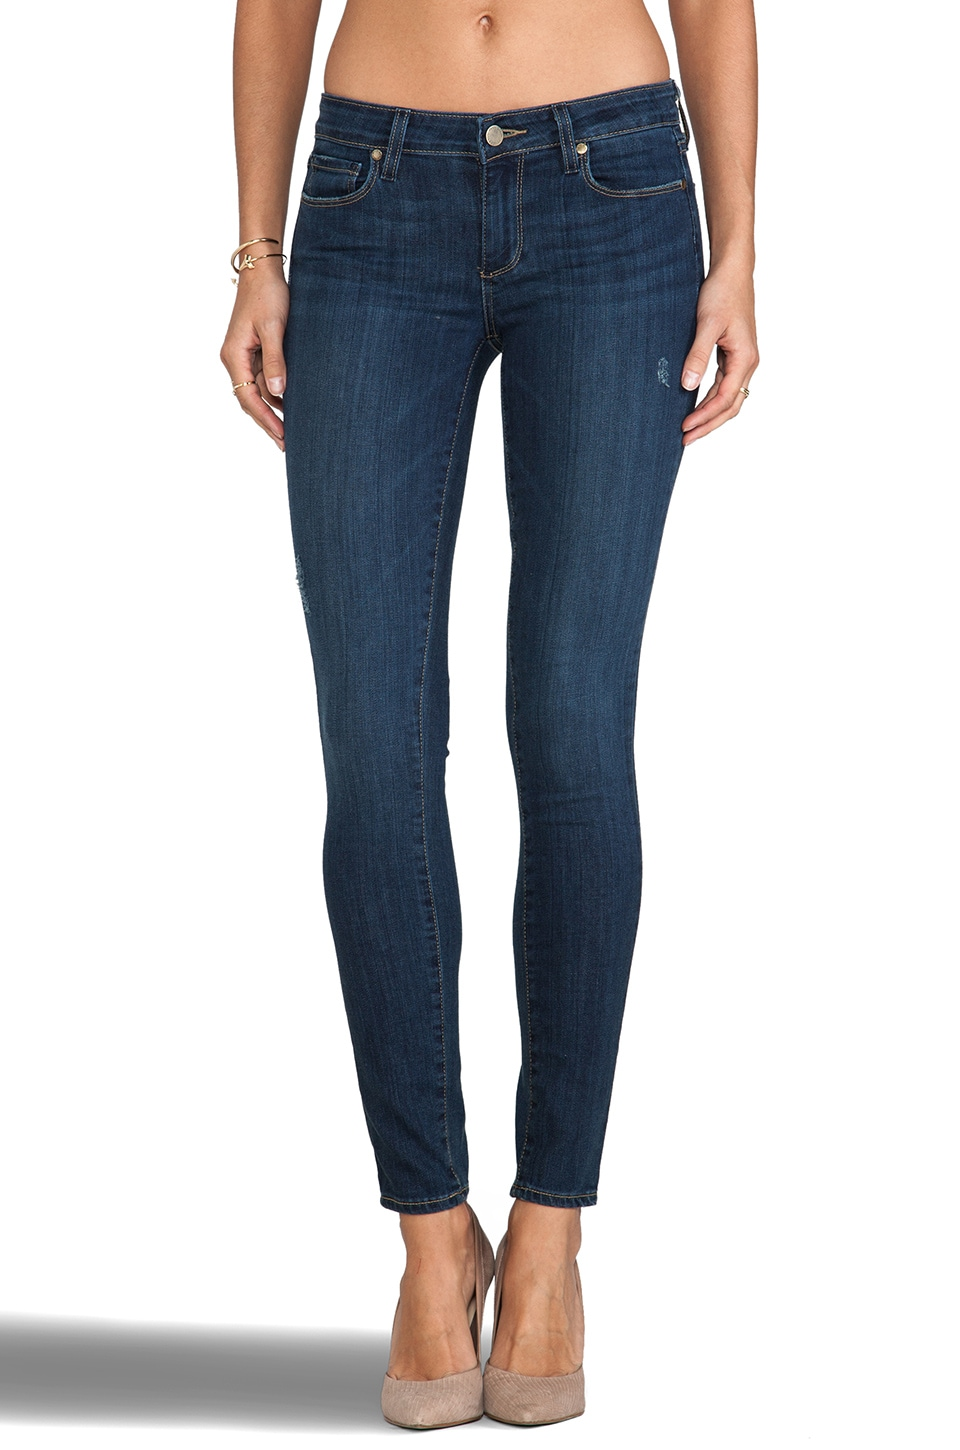 PAIGE Denim Verdugo Ultra Skinny in Avery